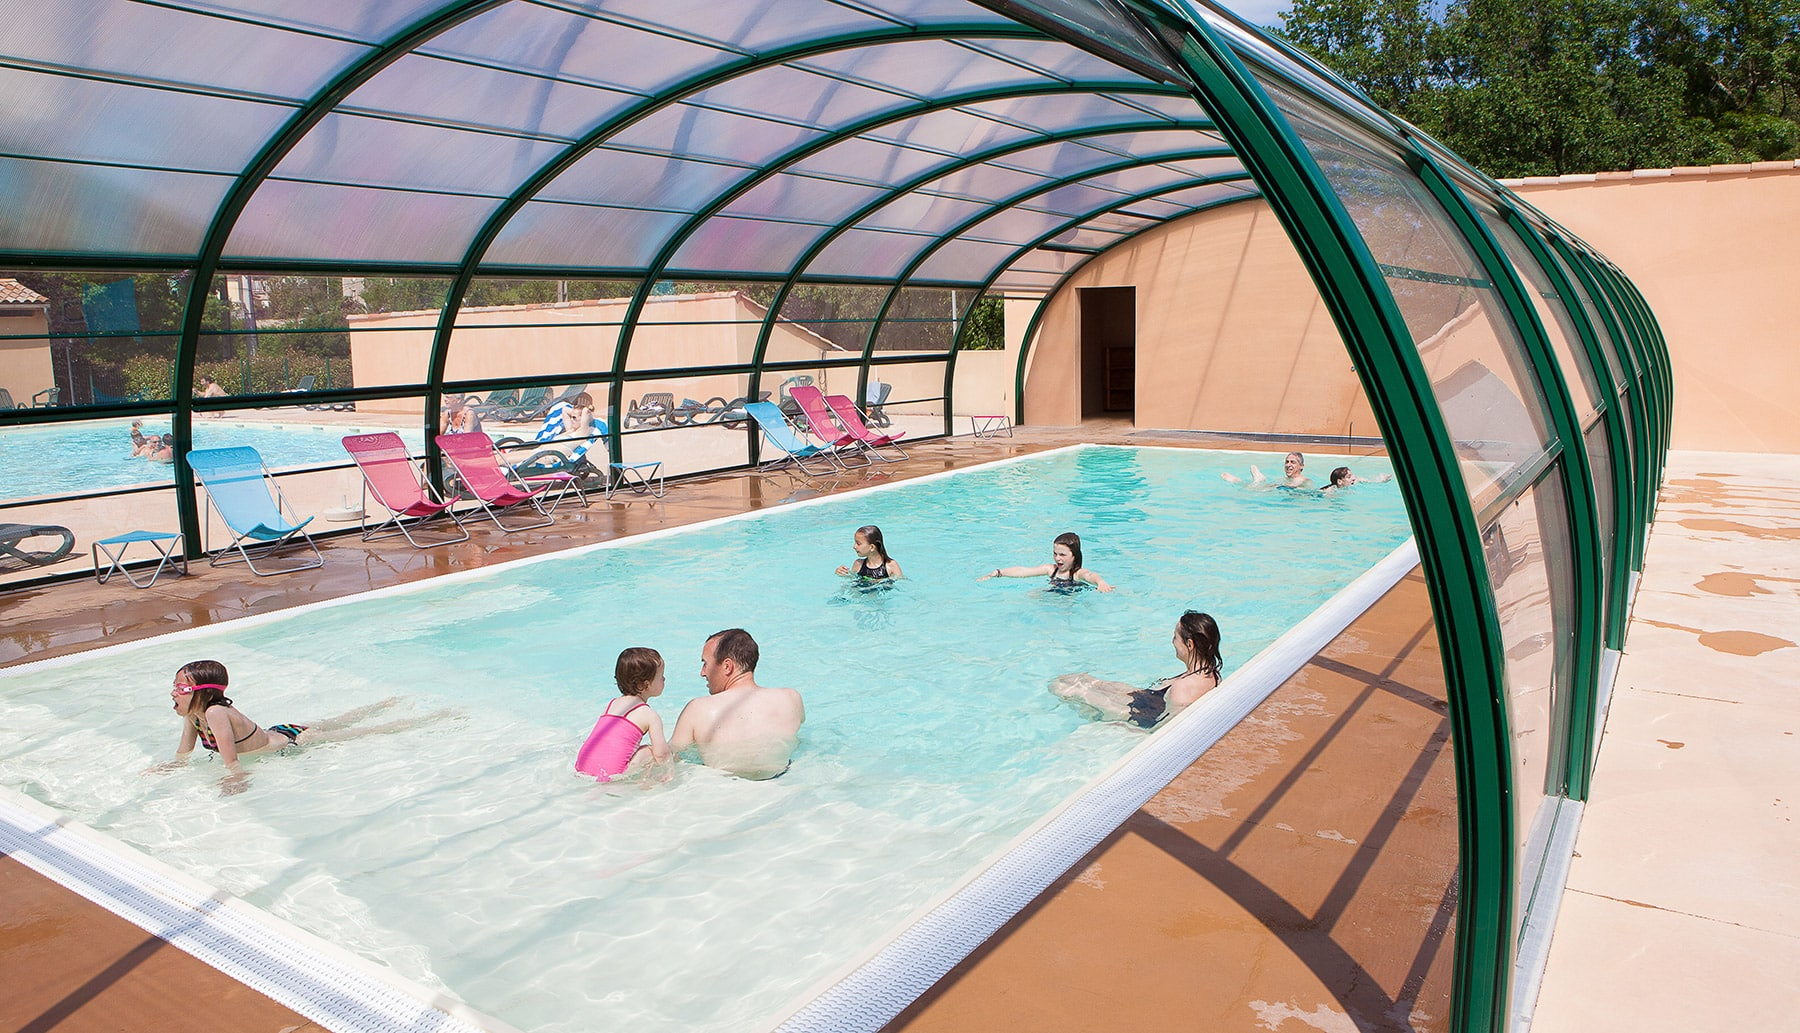 High Quality Piscine Couverte Chauffee Ardeche Camping